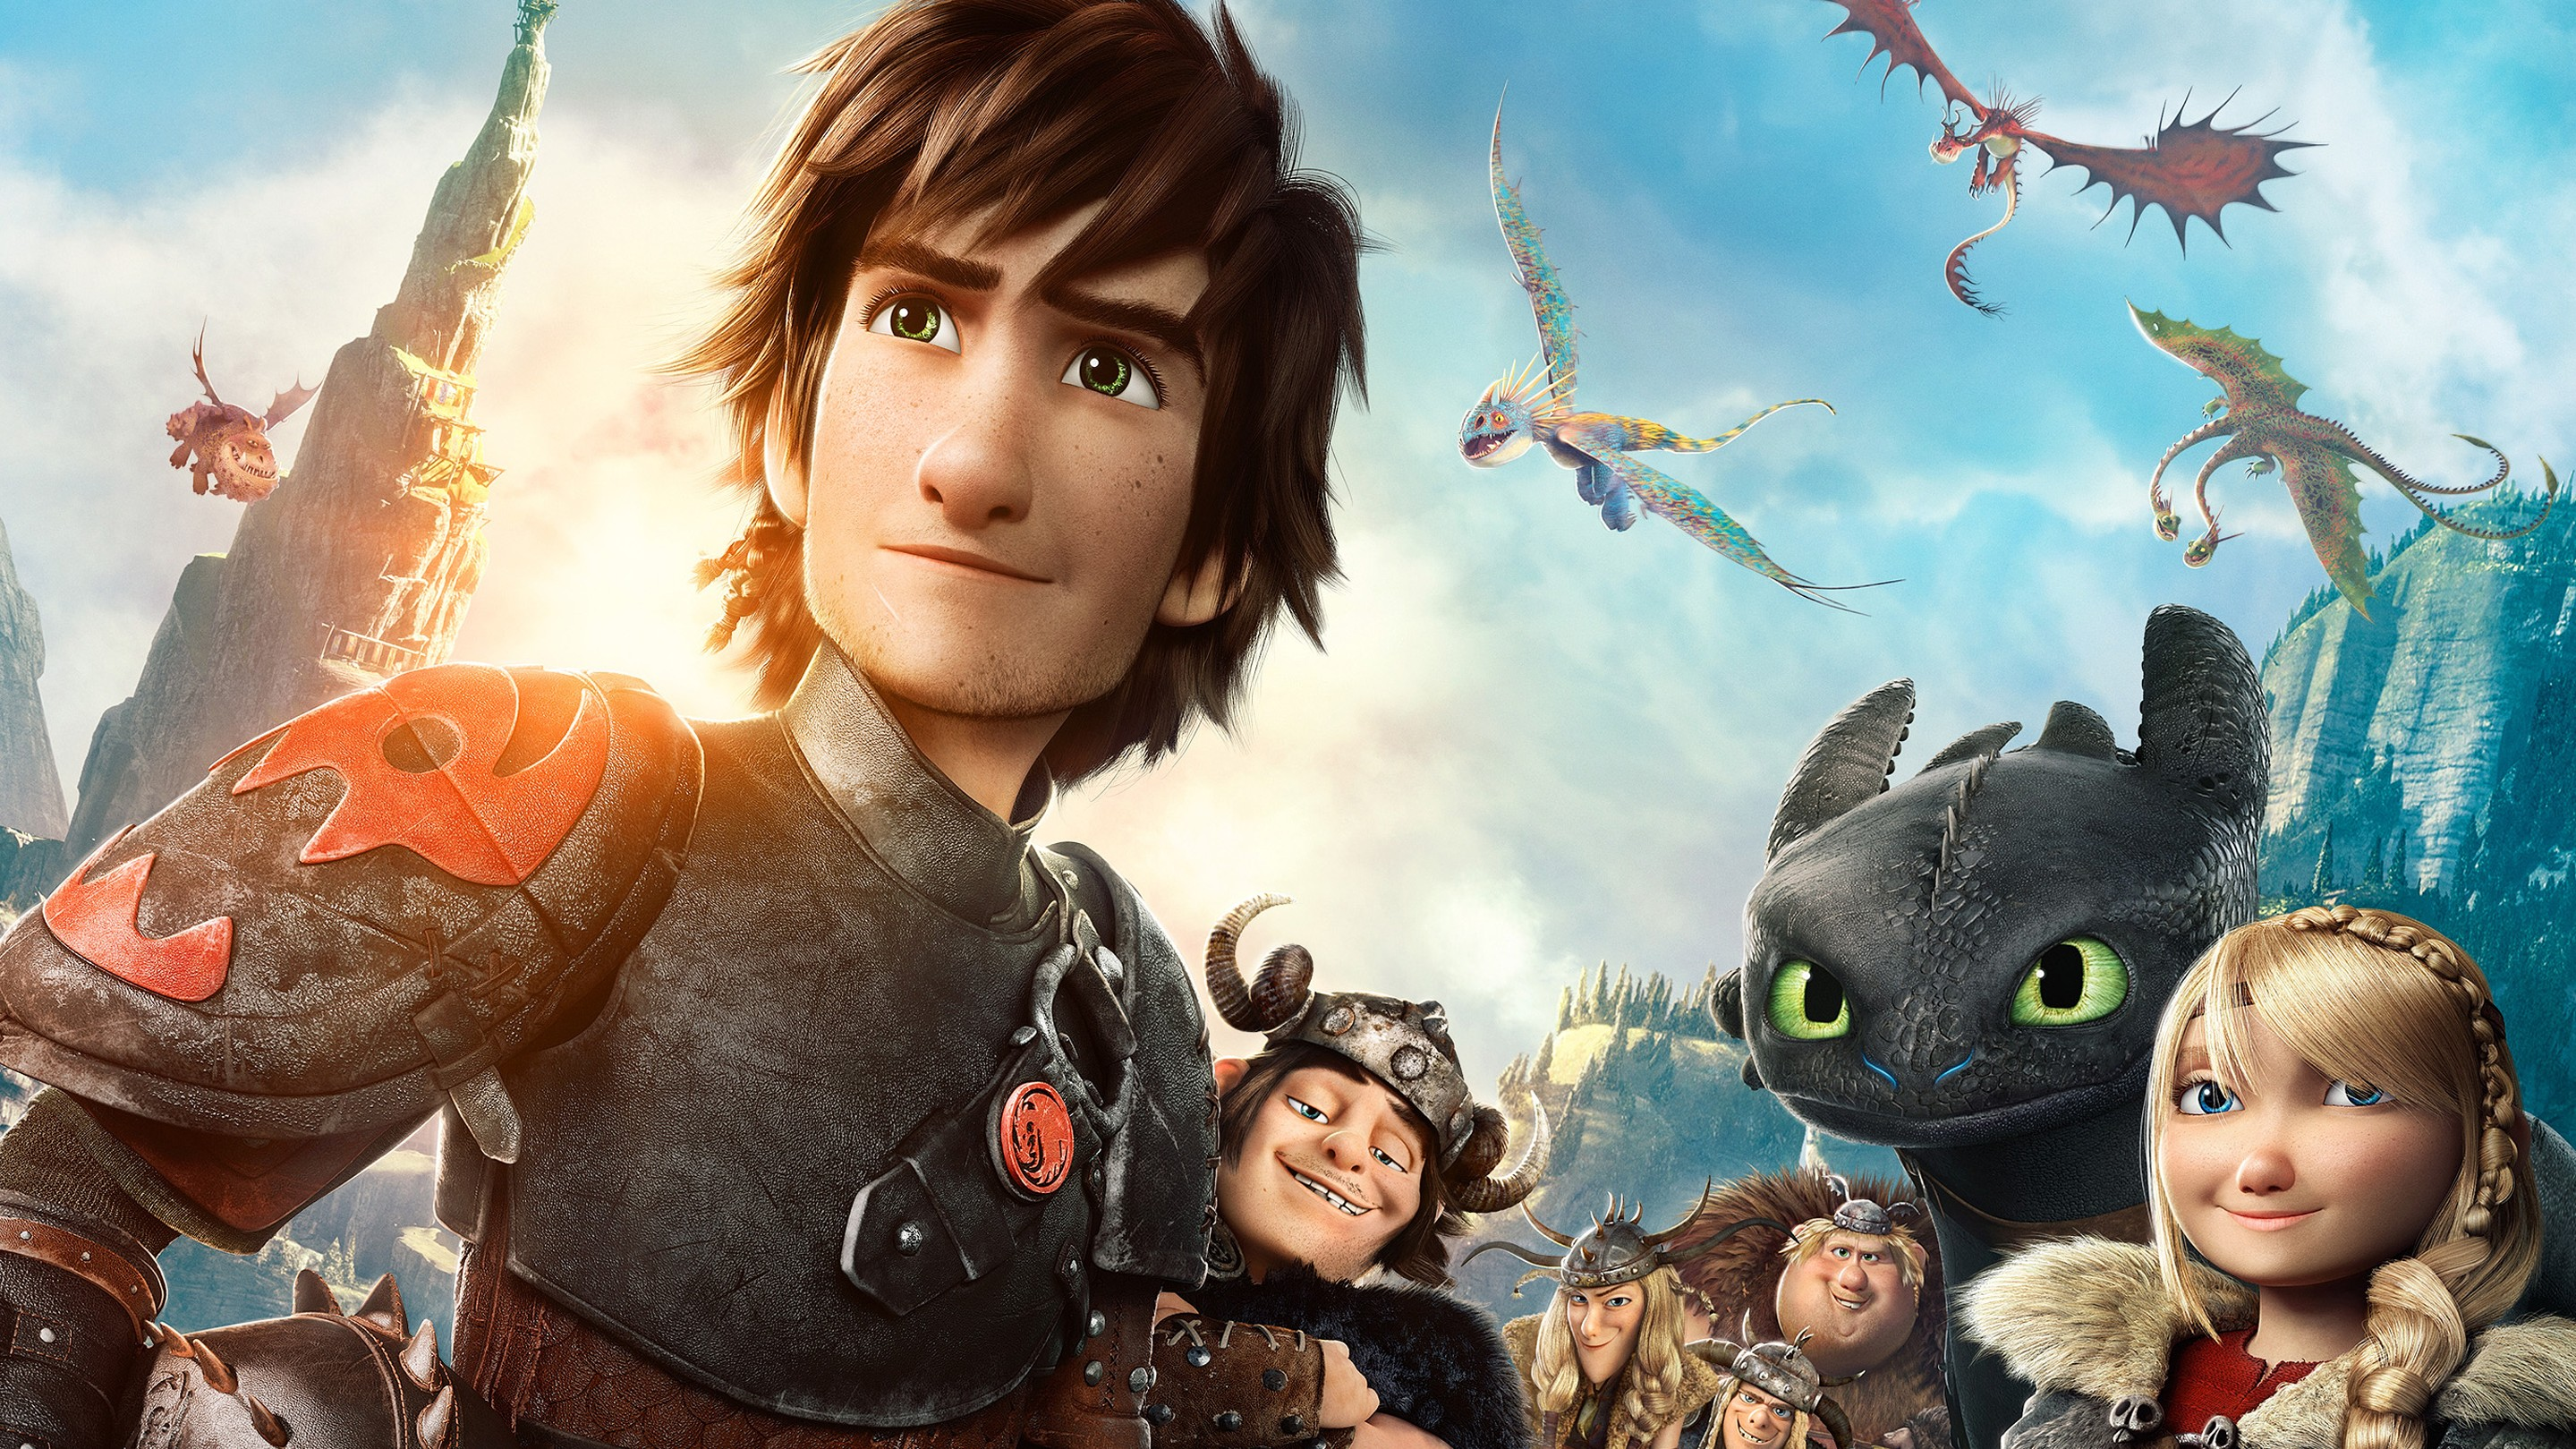 How to Train Your Dragon 2 is a 2014 American 3D computer-animated action fantasy film produced by DreamWorks Animation and distributed by 20th Century Fox, loosely based on the book series of the same name by Cressida Cowell.